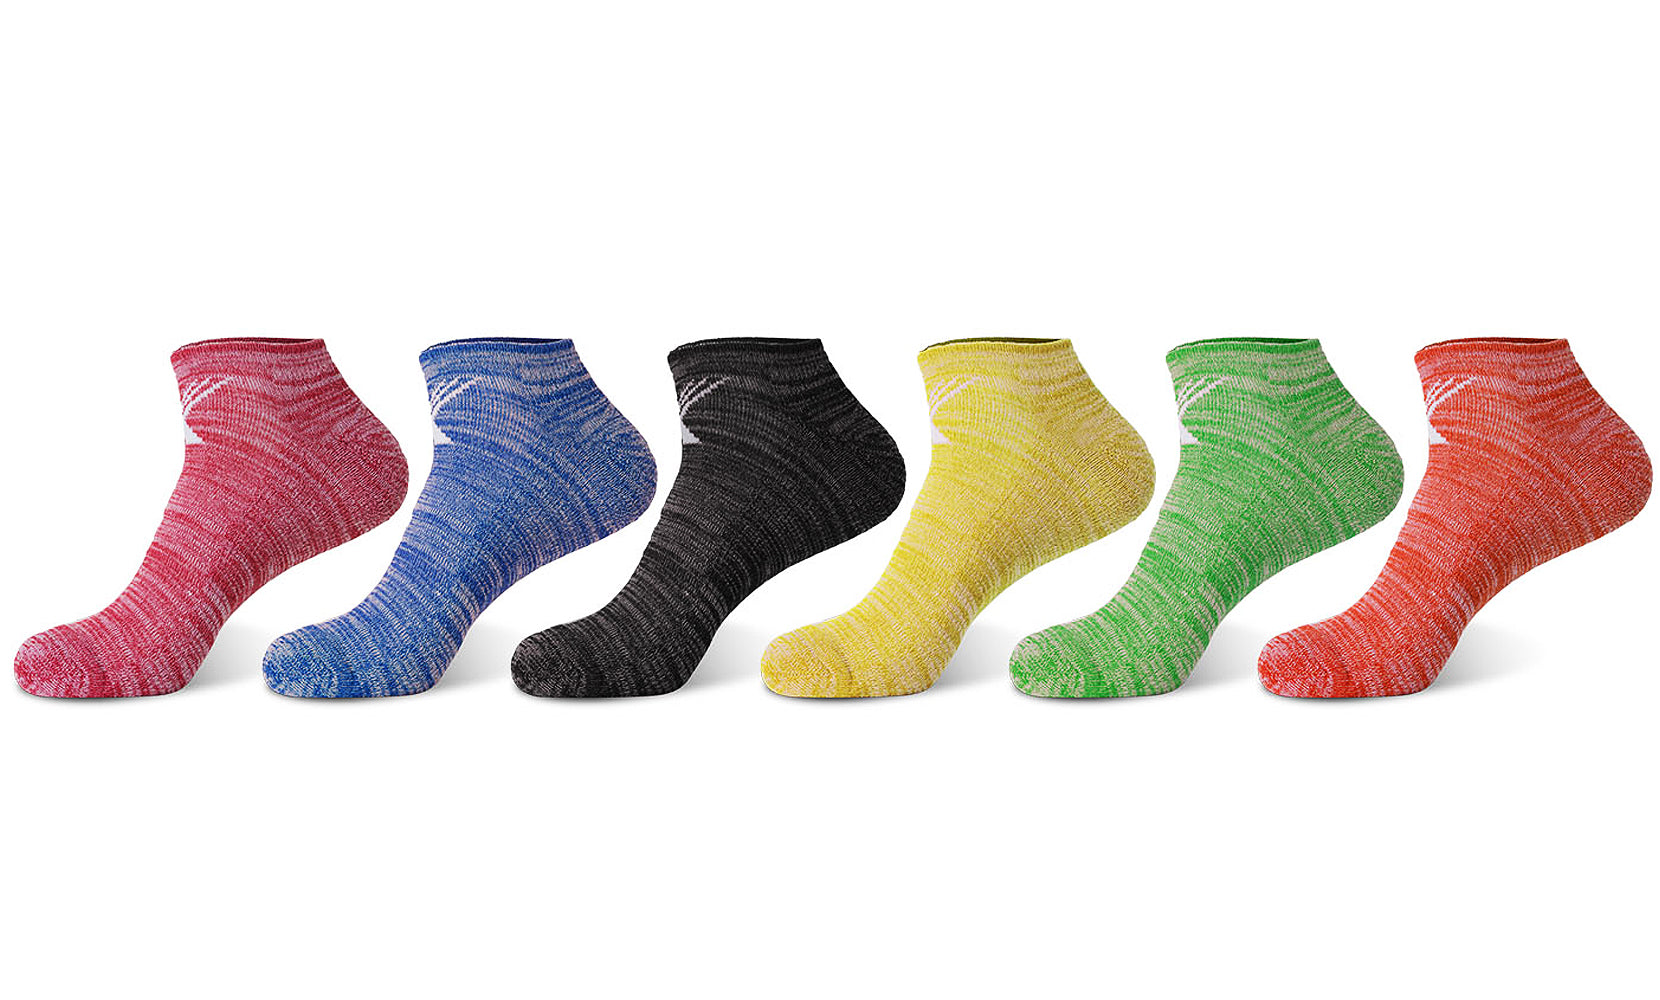 6-Pairs: Dri-Fit Performance Cushion Socks